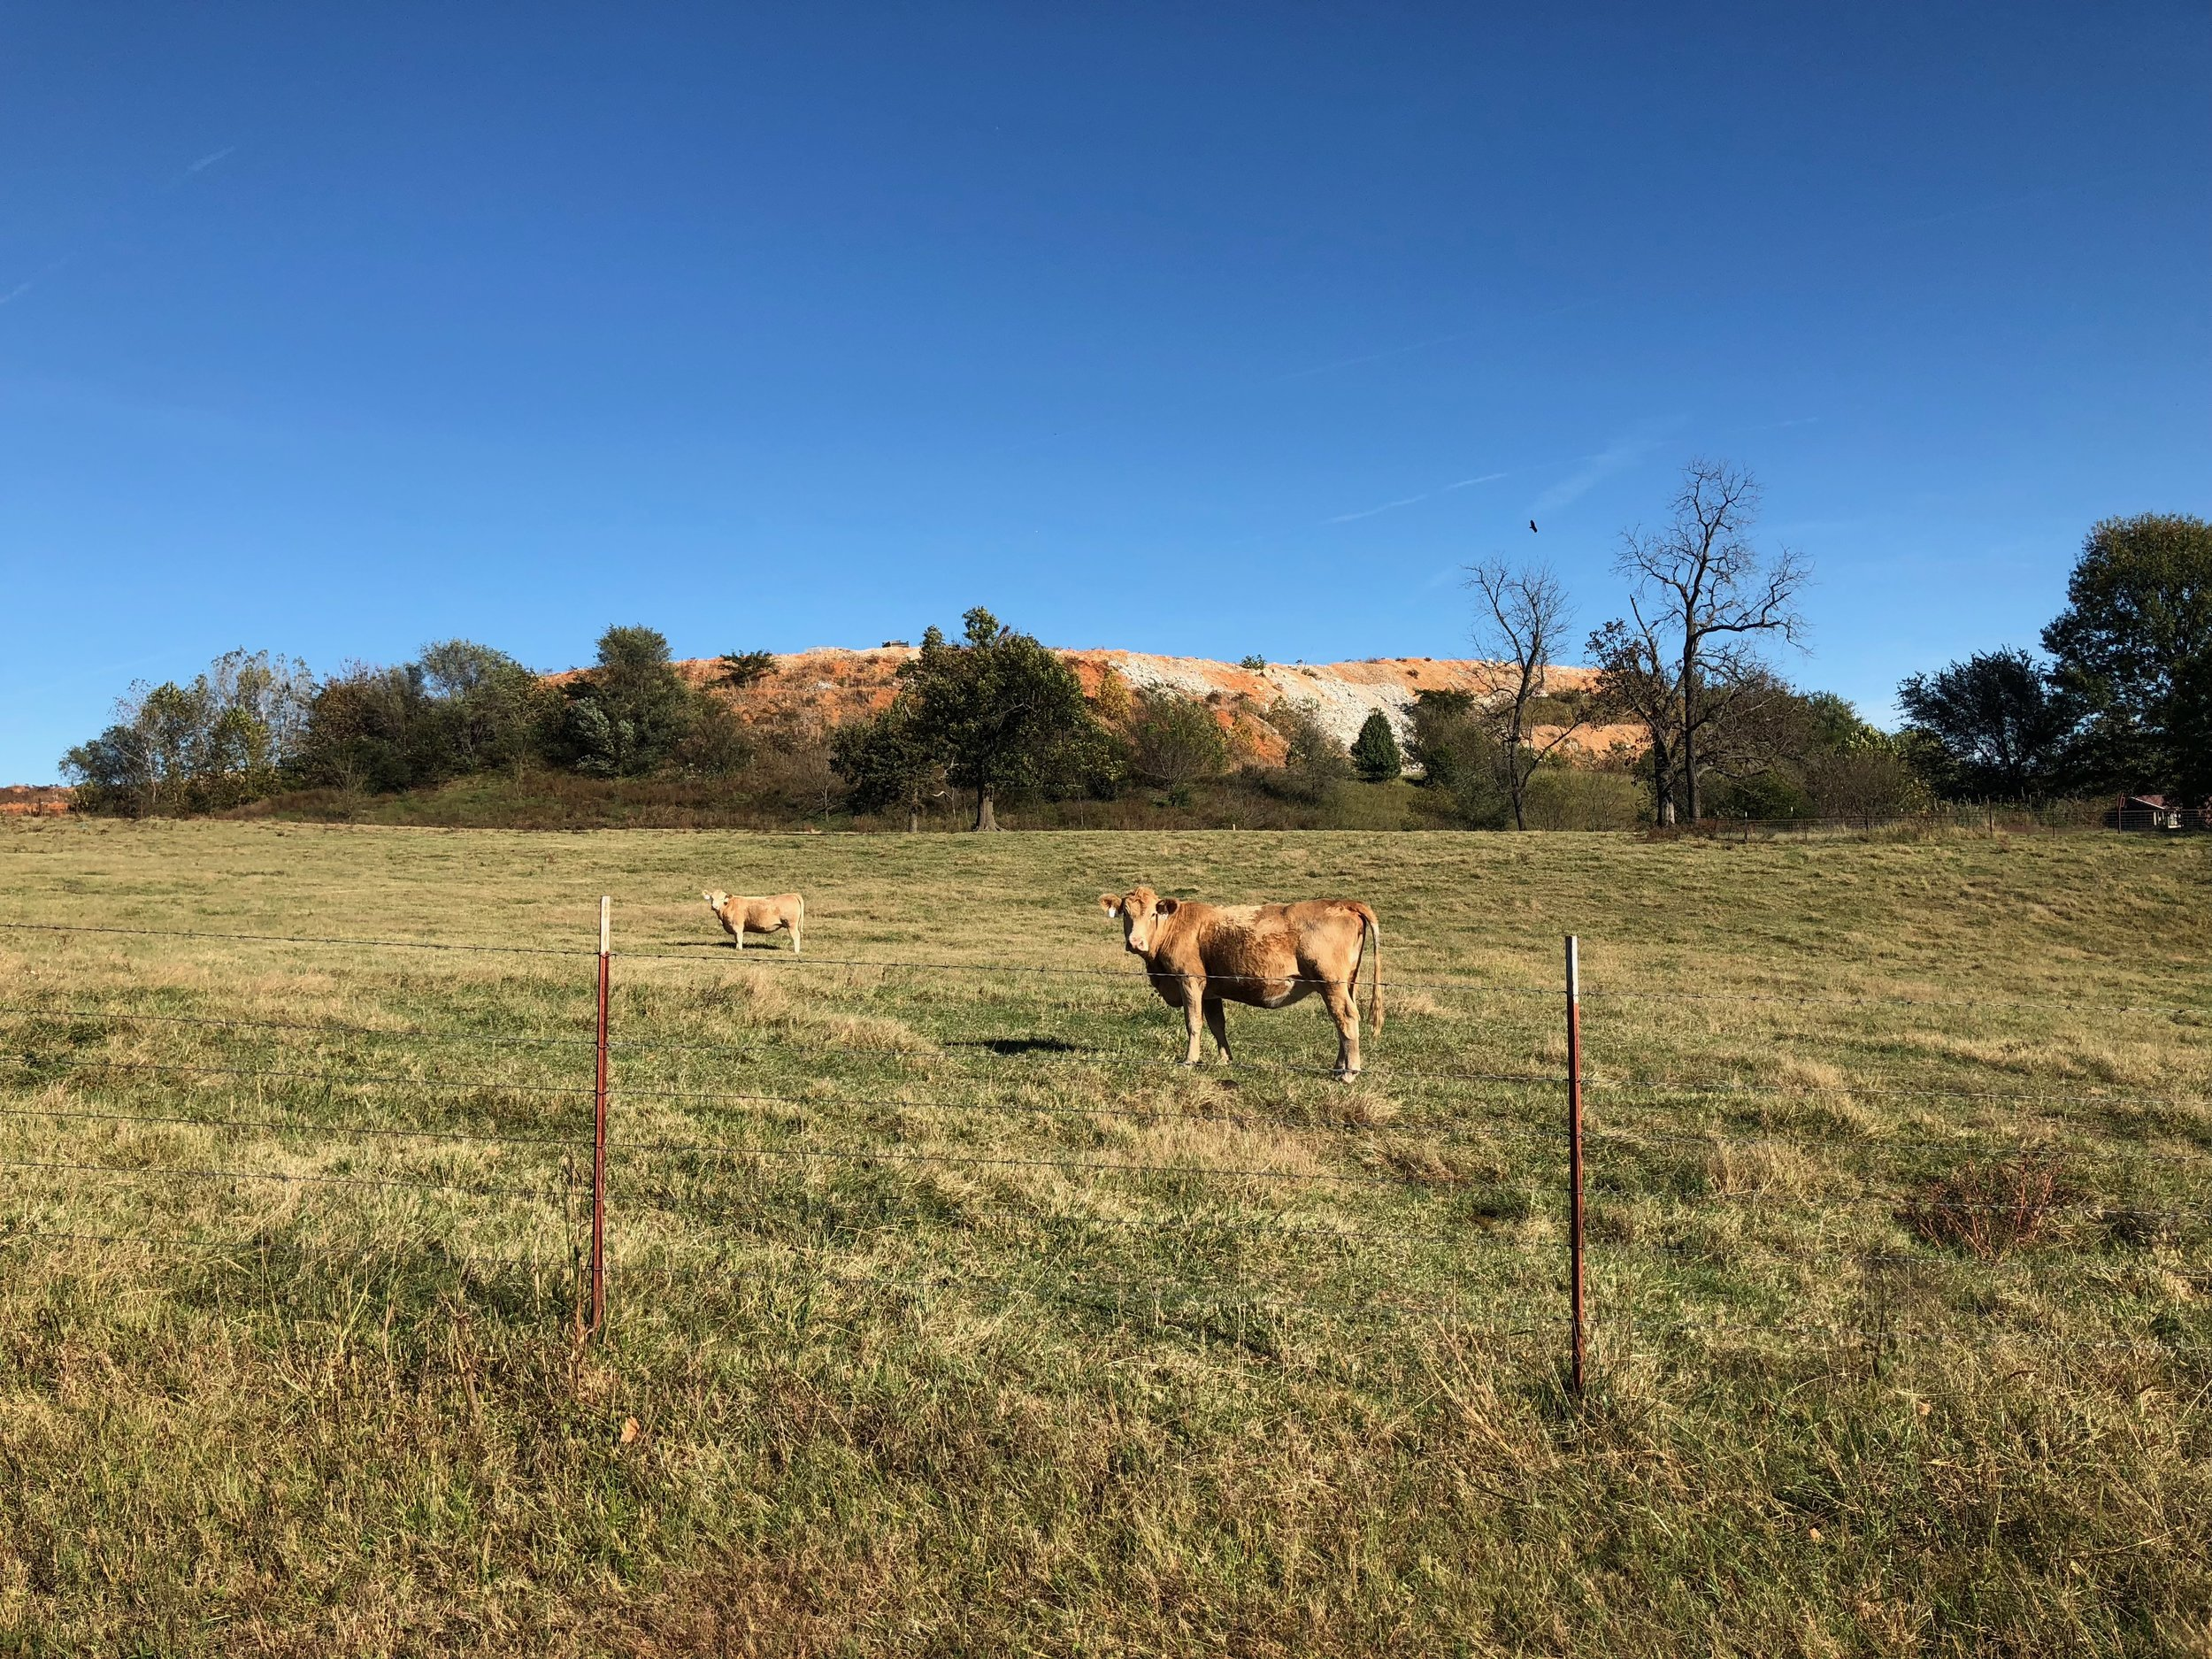 Pasture pals with a road construction backdrop